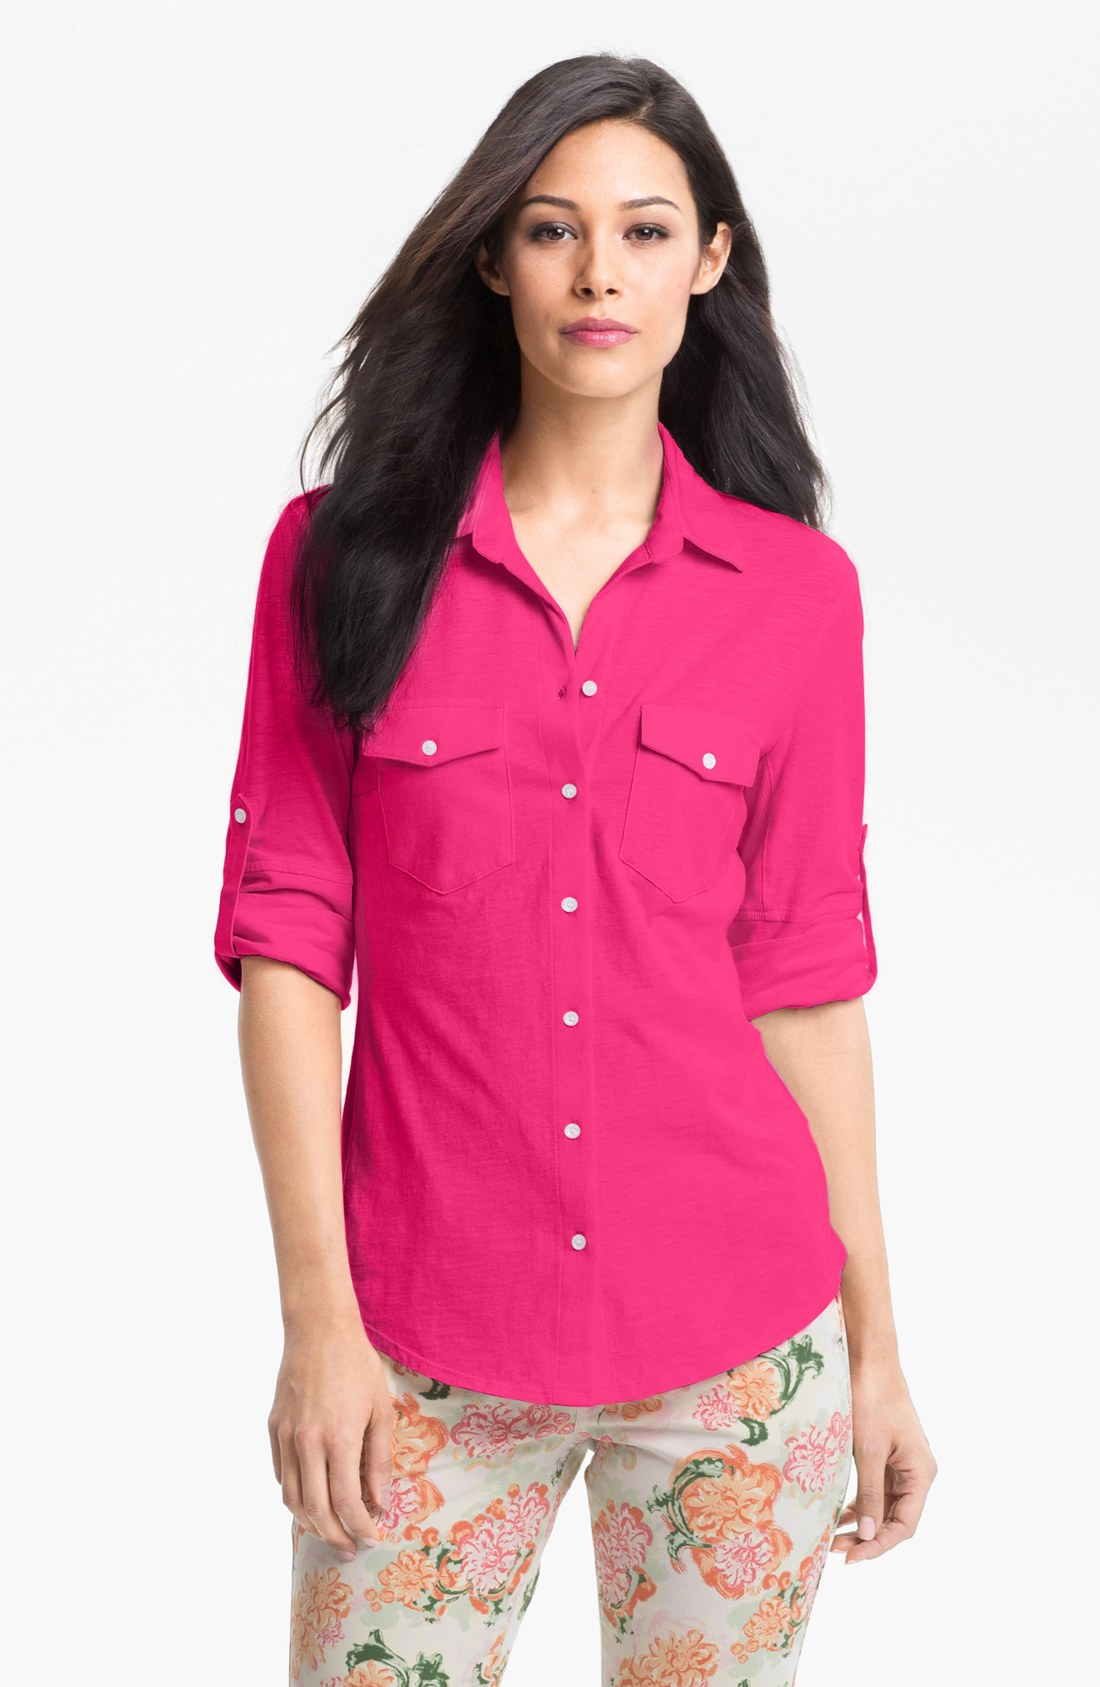 Shocking Pink Shirt